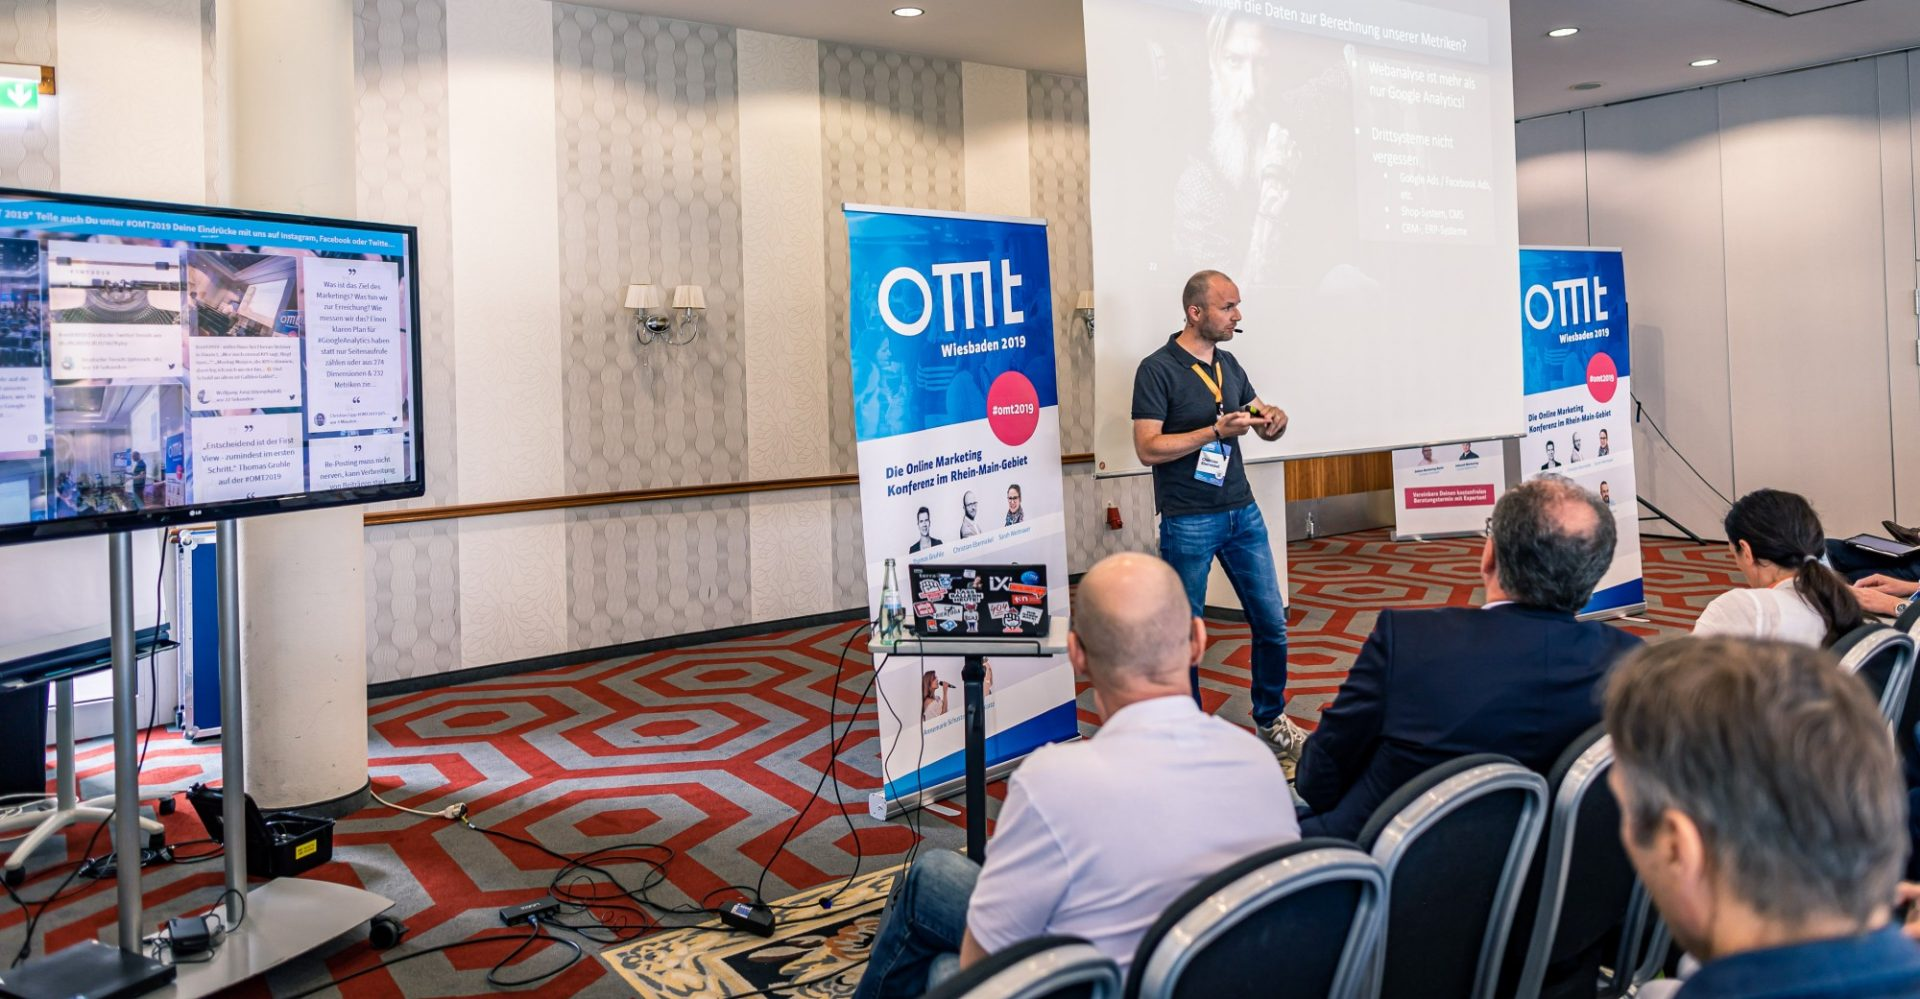 Christian Ebernickel - Data Booster - OMT 2019